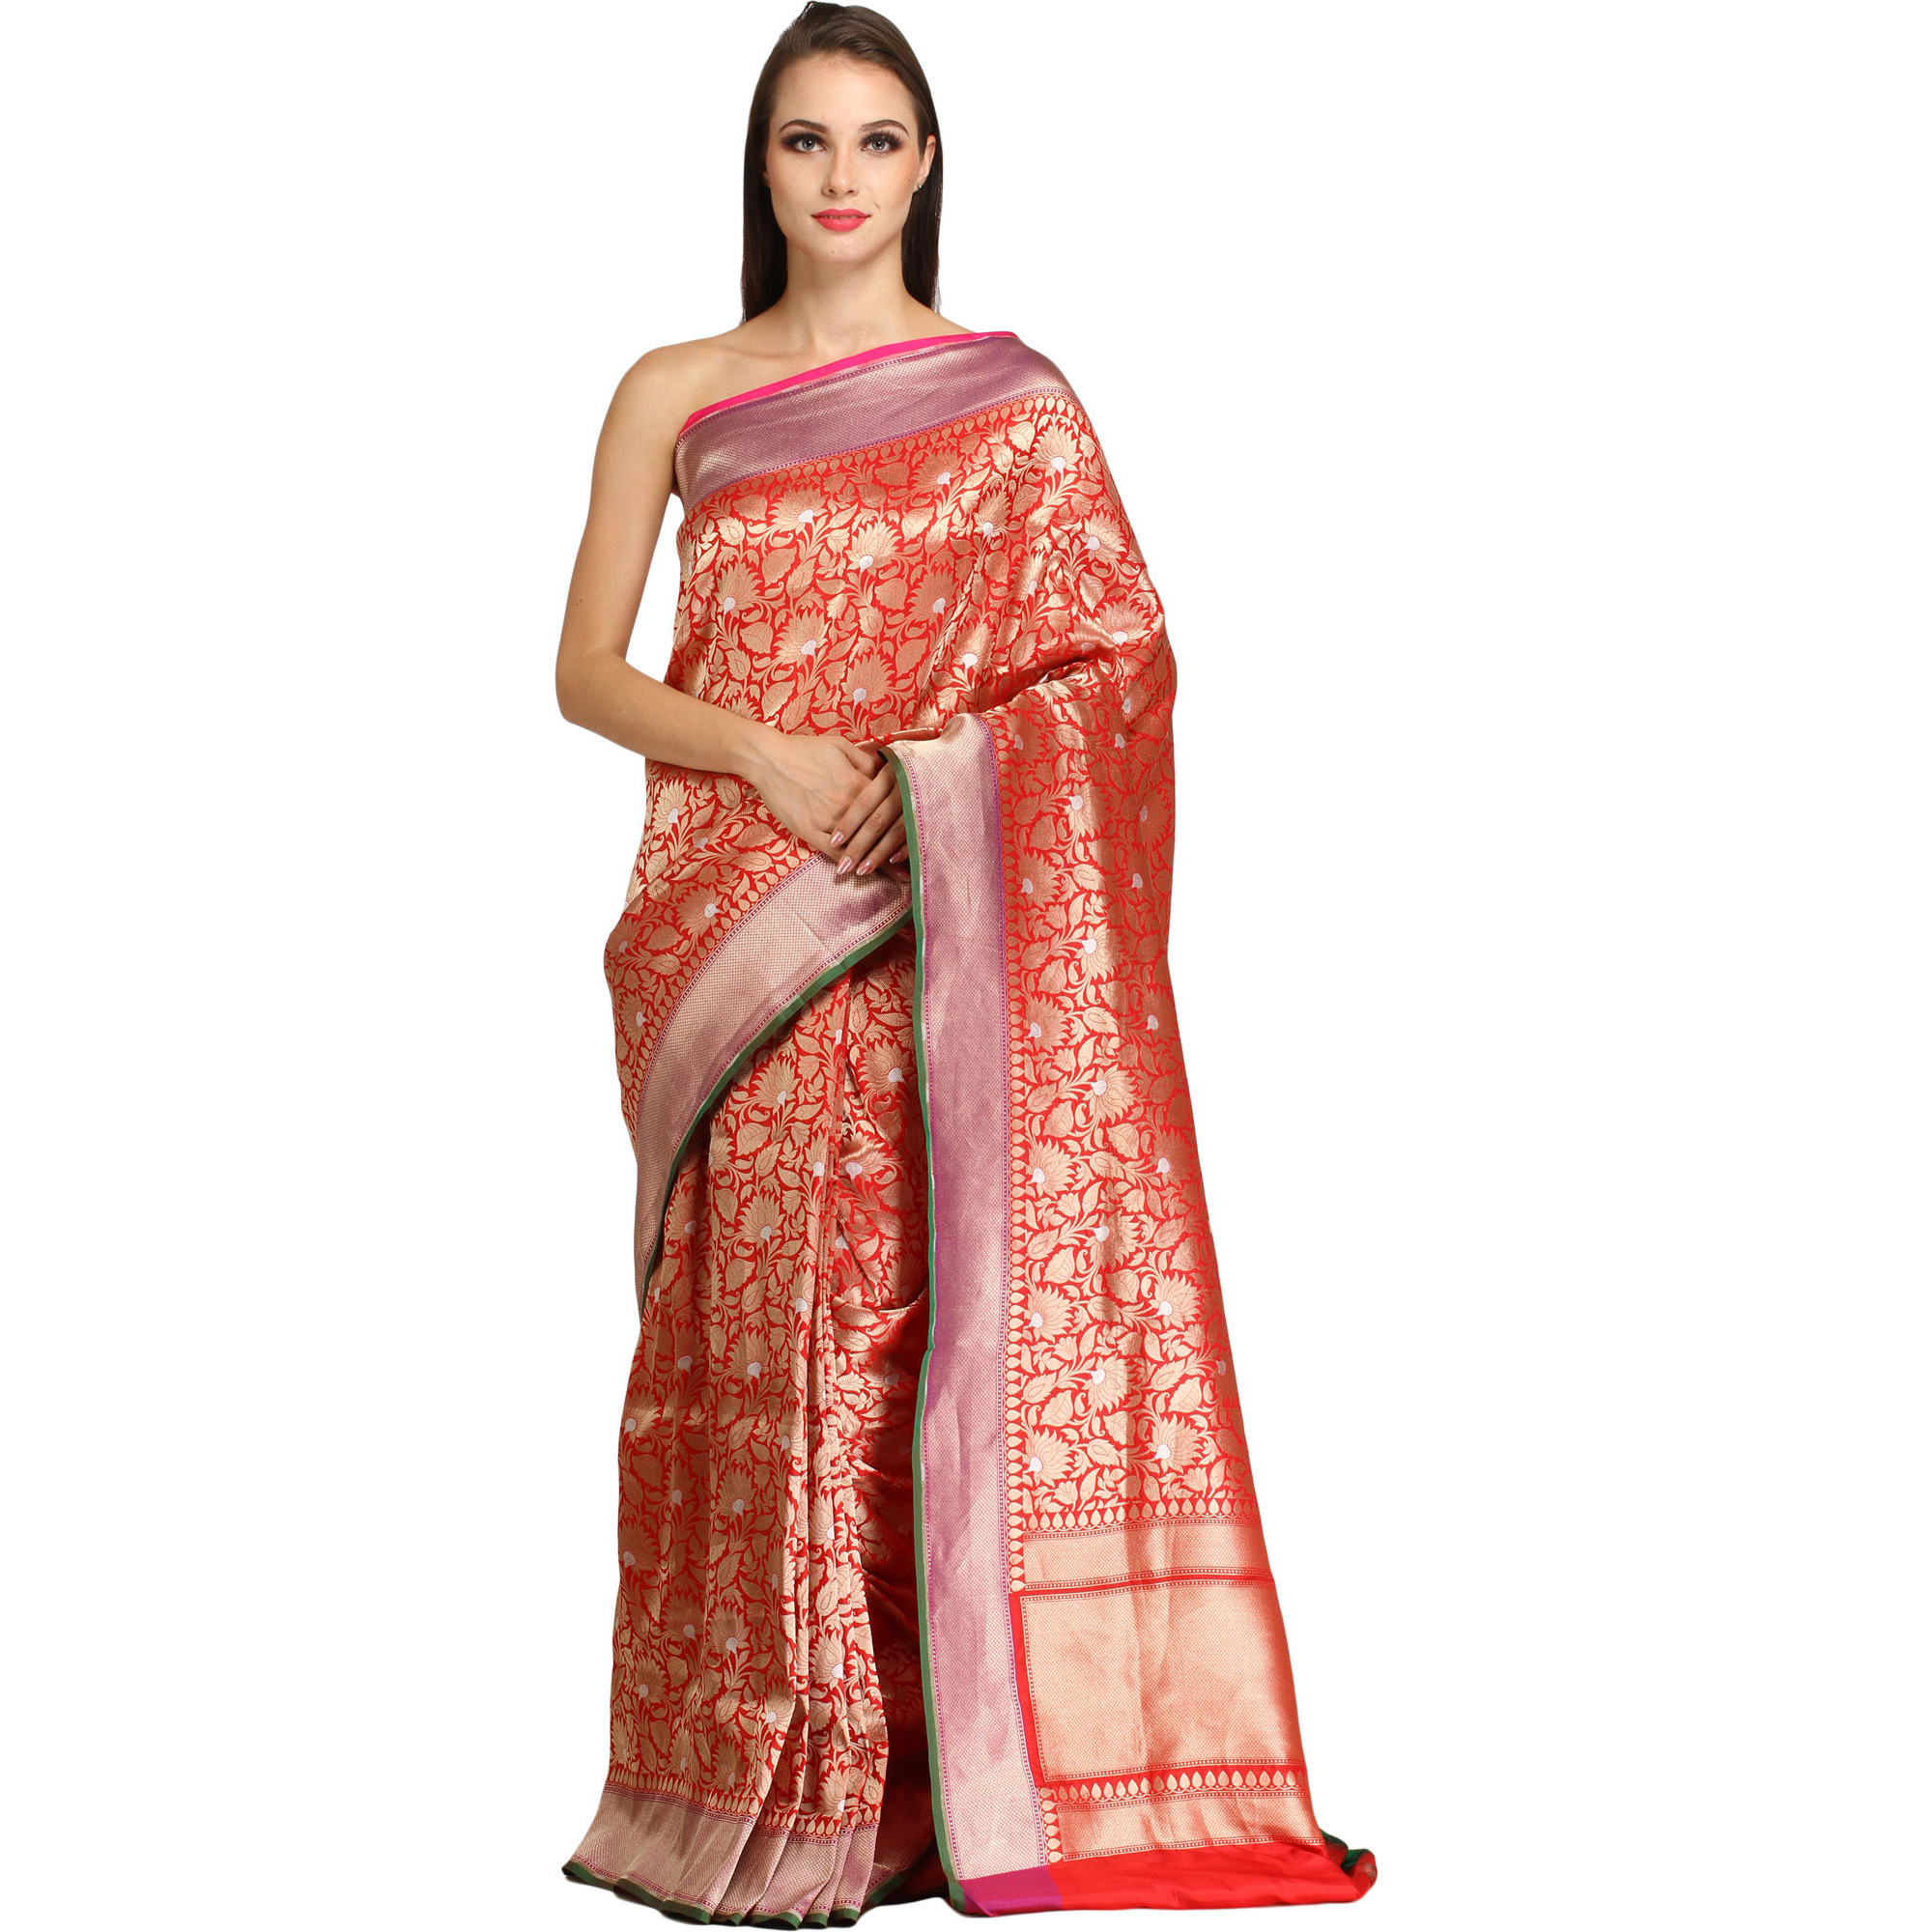 Bridal-Red Brocaded Handloom Banarasi Sari with Zari-Woven Lotuses All-Over